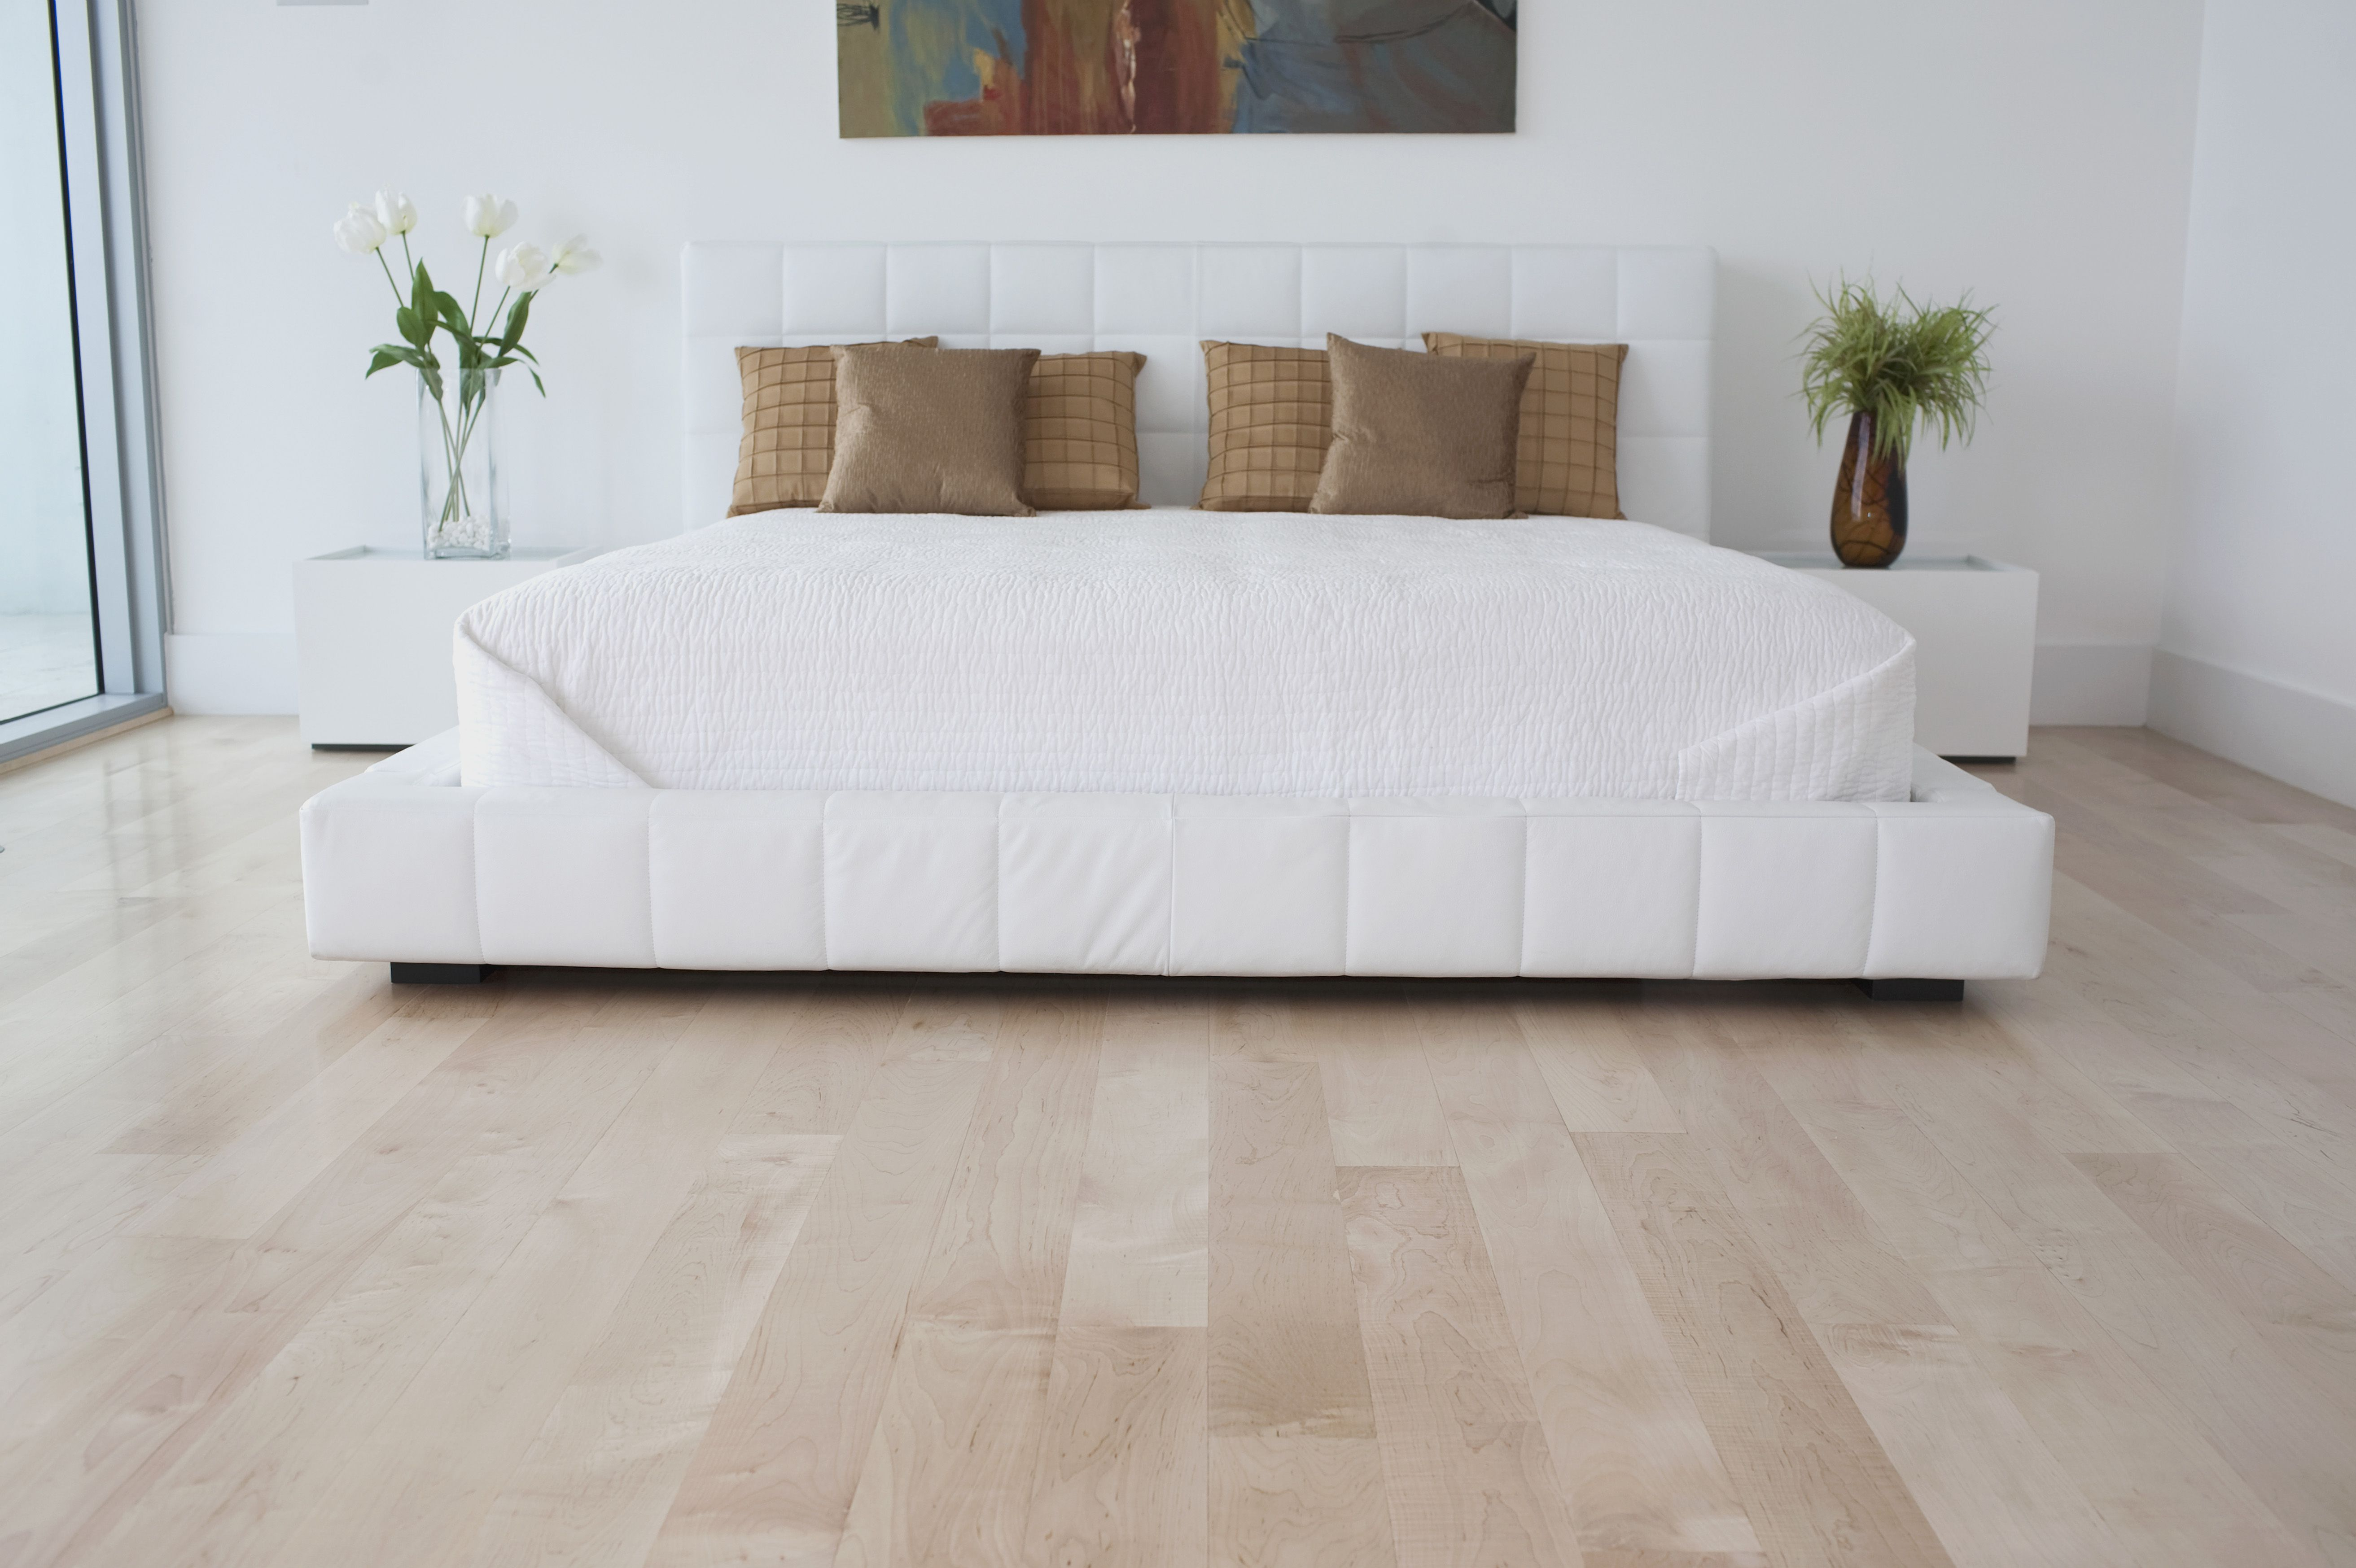 Why Ought to I Select Laminate Flooring?